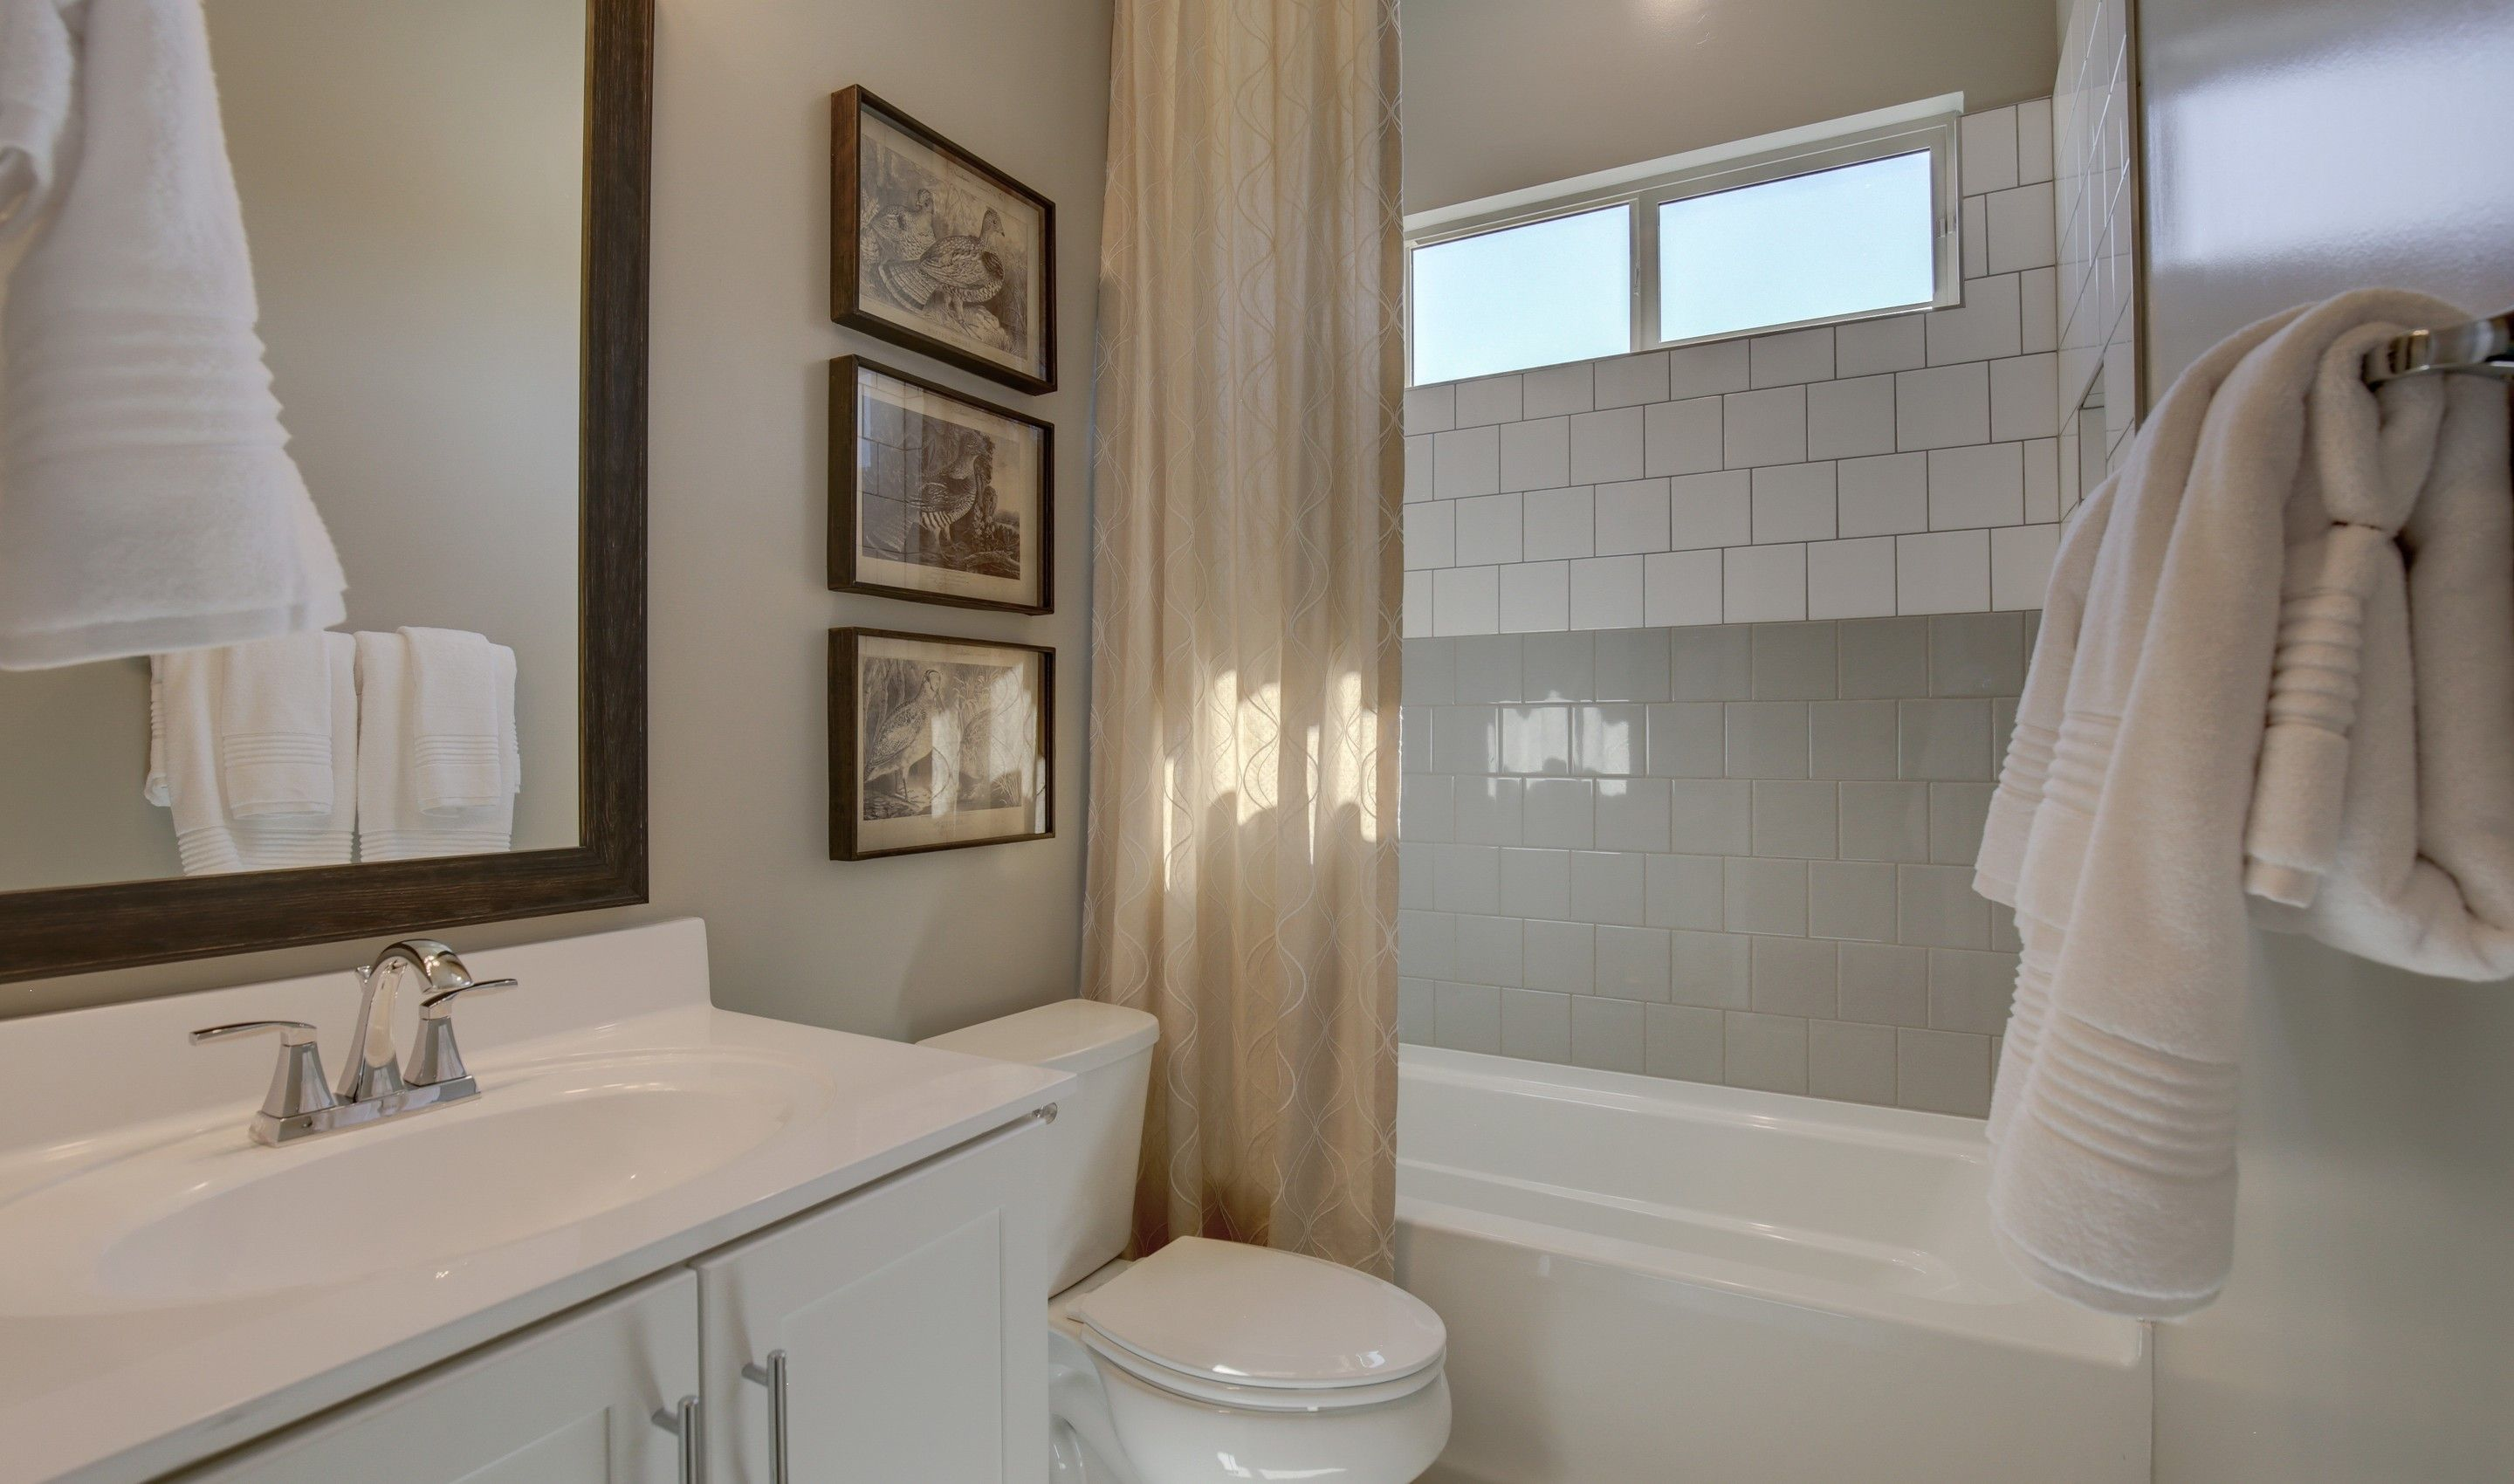 Bathroom featured in the Starling By K. Hovnanian's® Four Seasons in Phoenix-Mesa, AZ